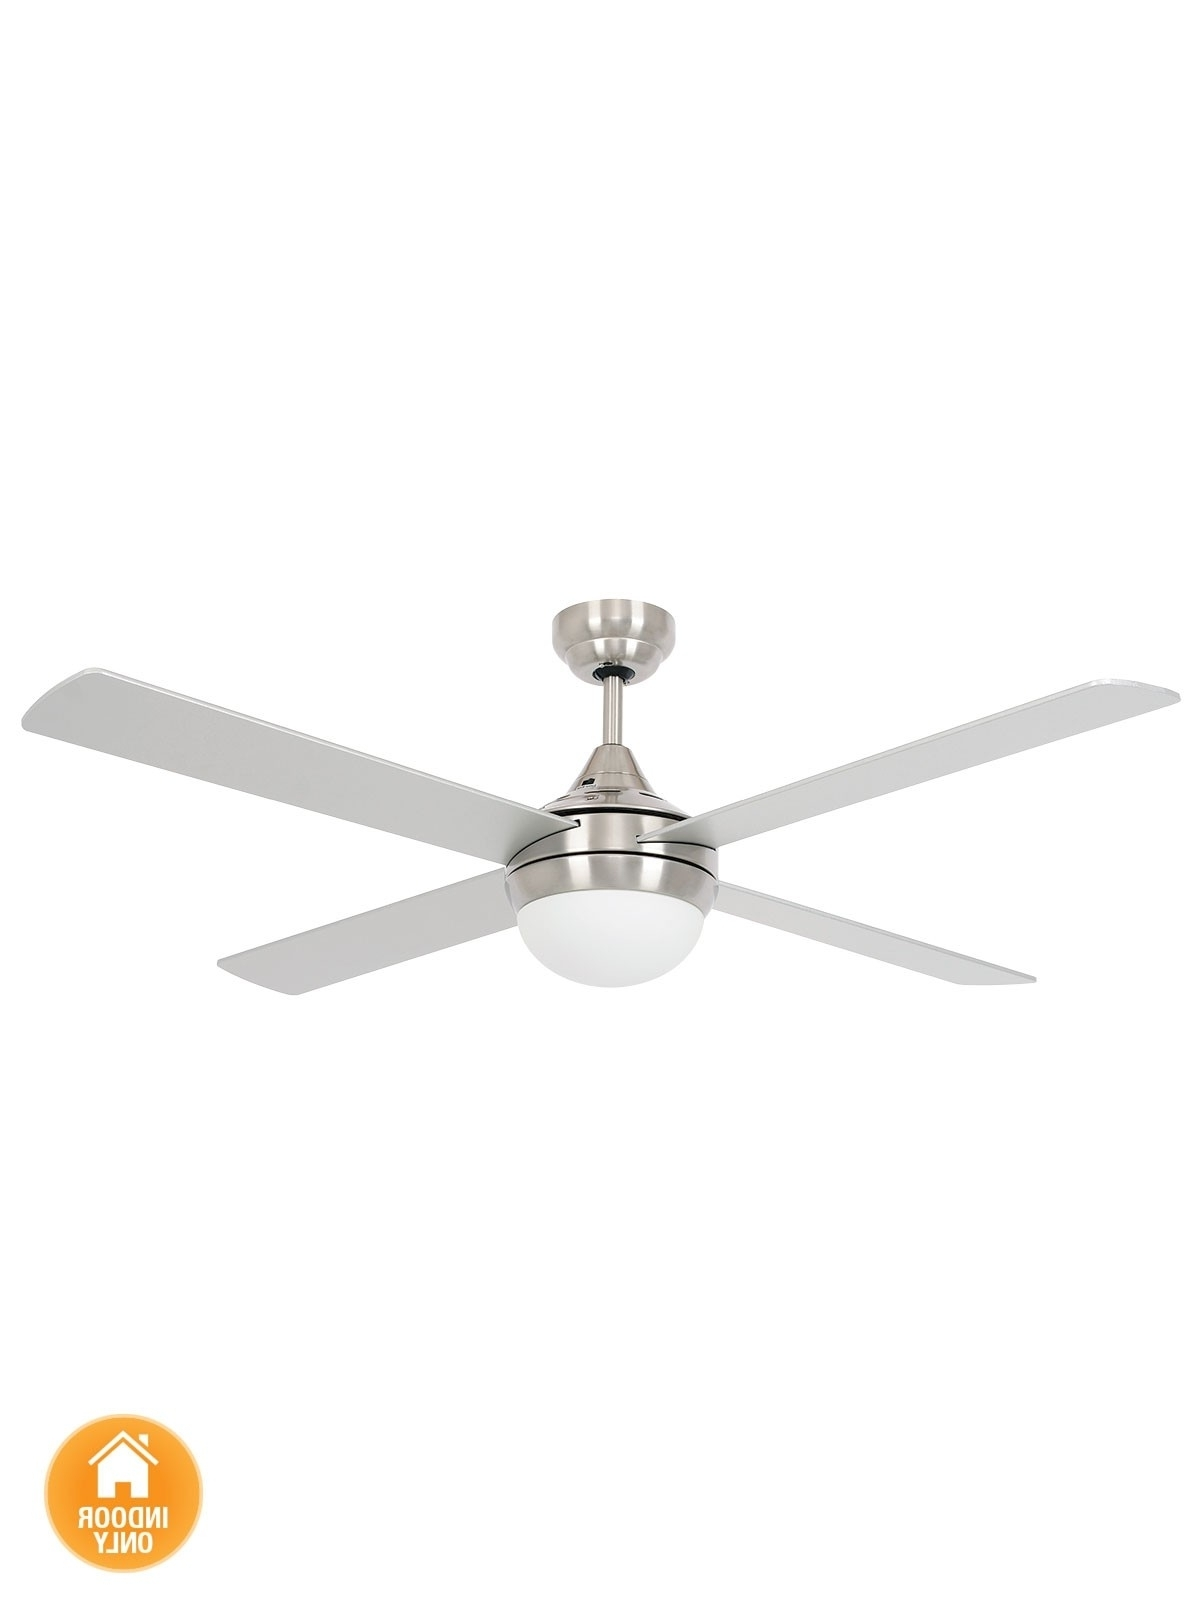 Beacon Lighting With Regard To Preferred Sunshine Coast Outdoor Ceiling Fans (View 5 of 20)